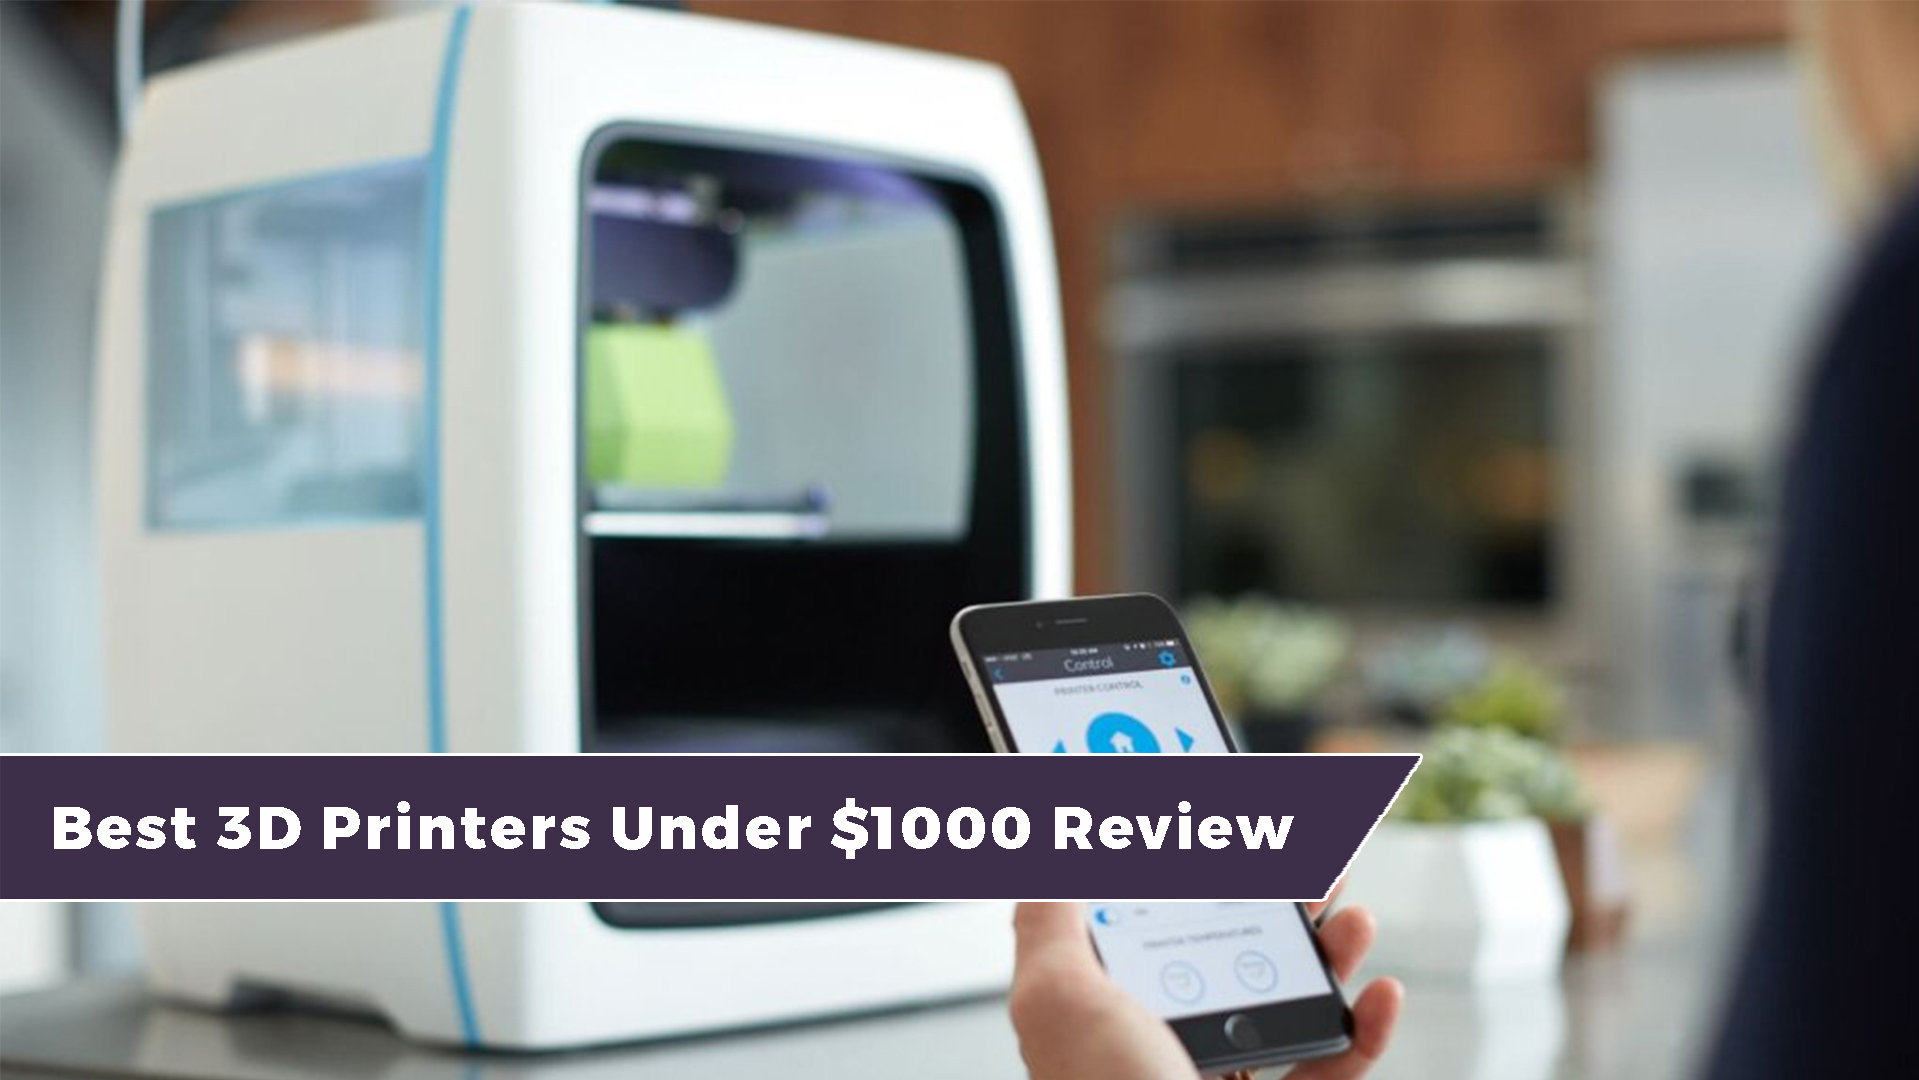 Best 3D Printers under $1000 Review DIY Kits included